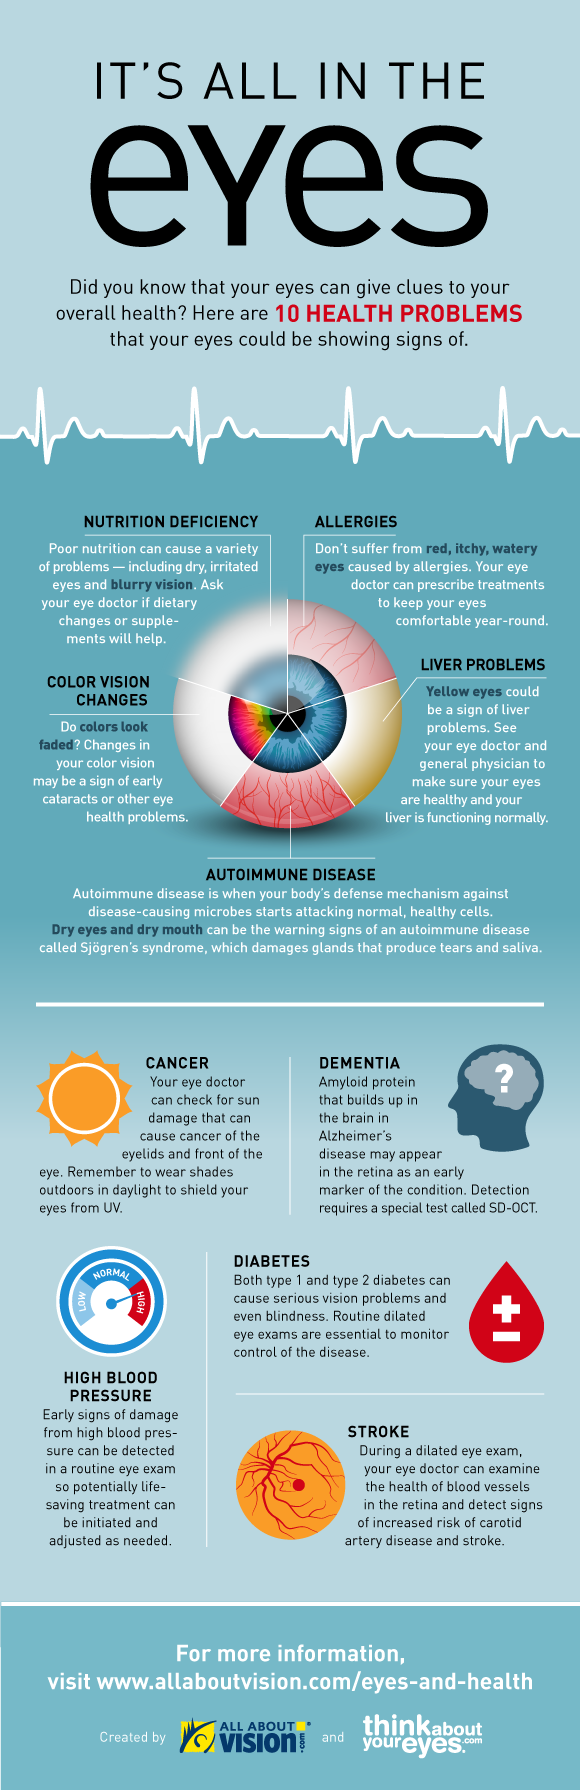 Color vision art - Eye Exams Can Detect More Than Just Vision Problems Find Out What Your Eyes Are